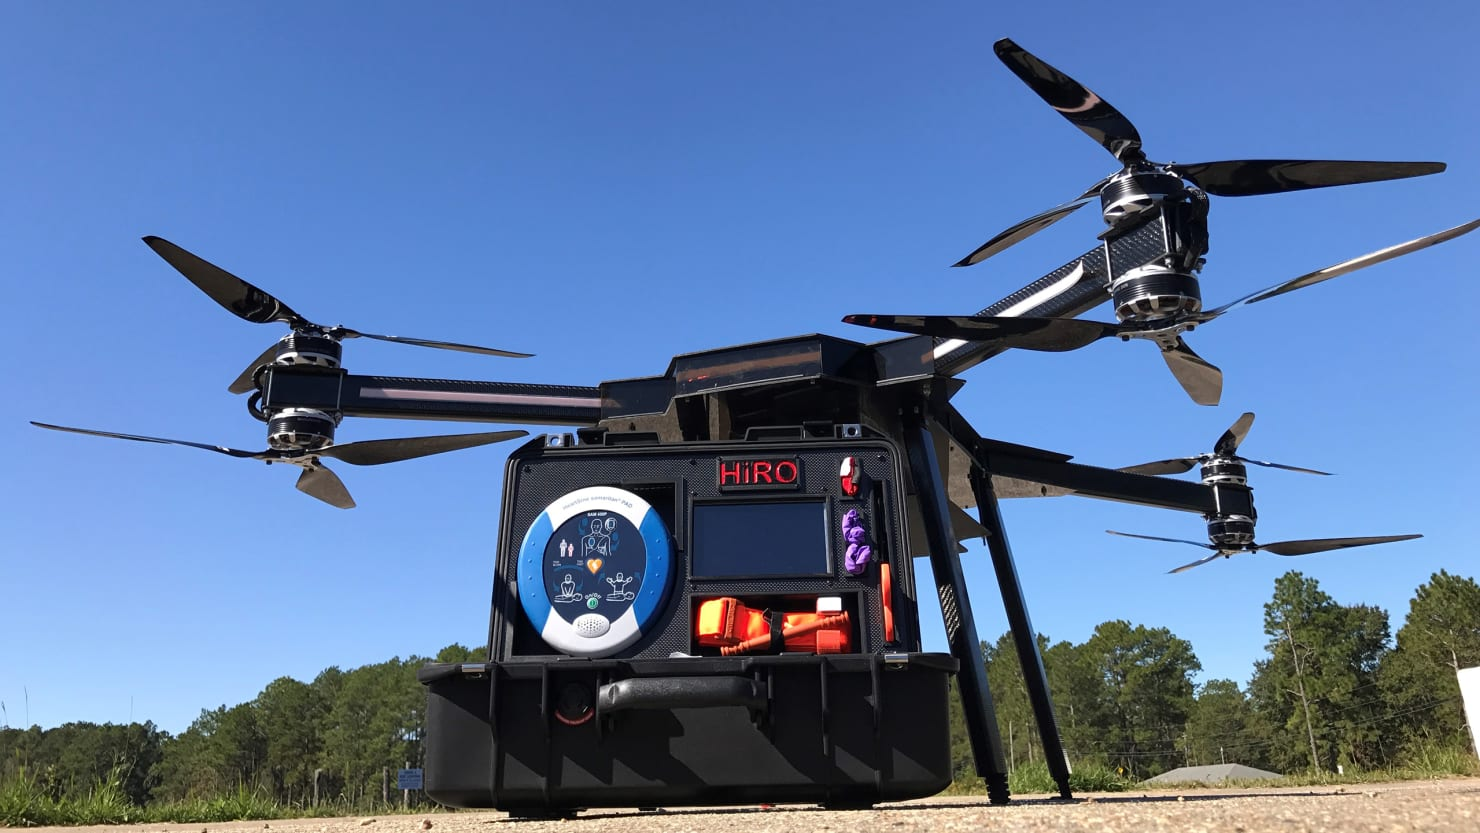 HiRO the Drone Will Change Emergency Medical Treatment